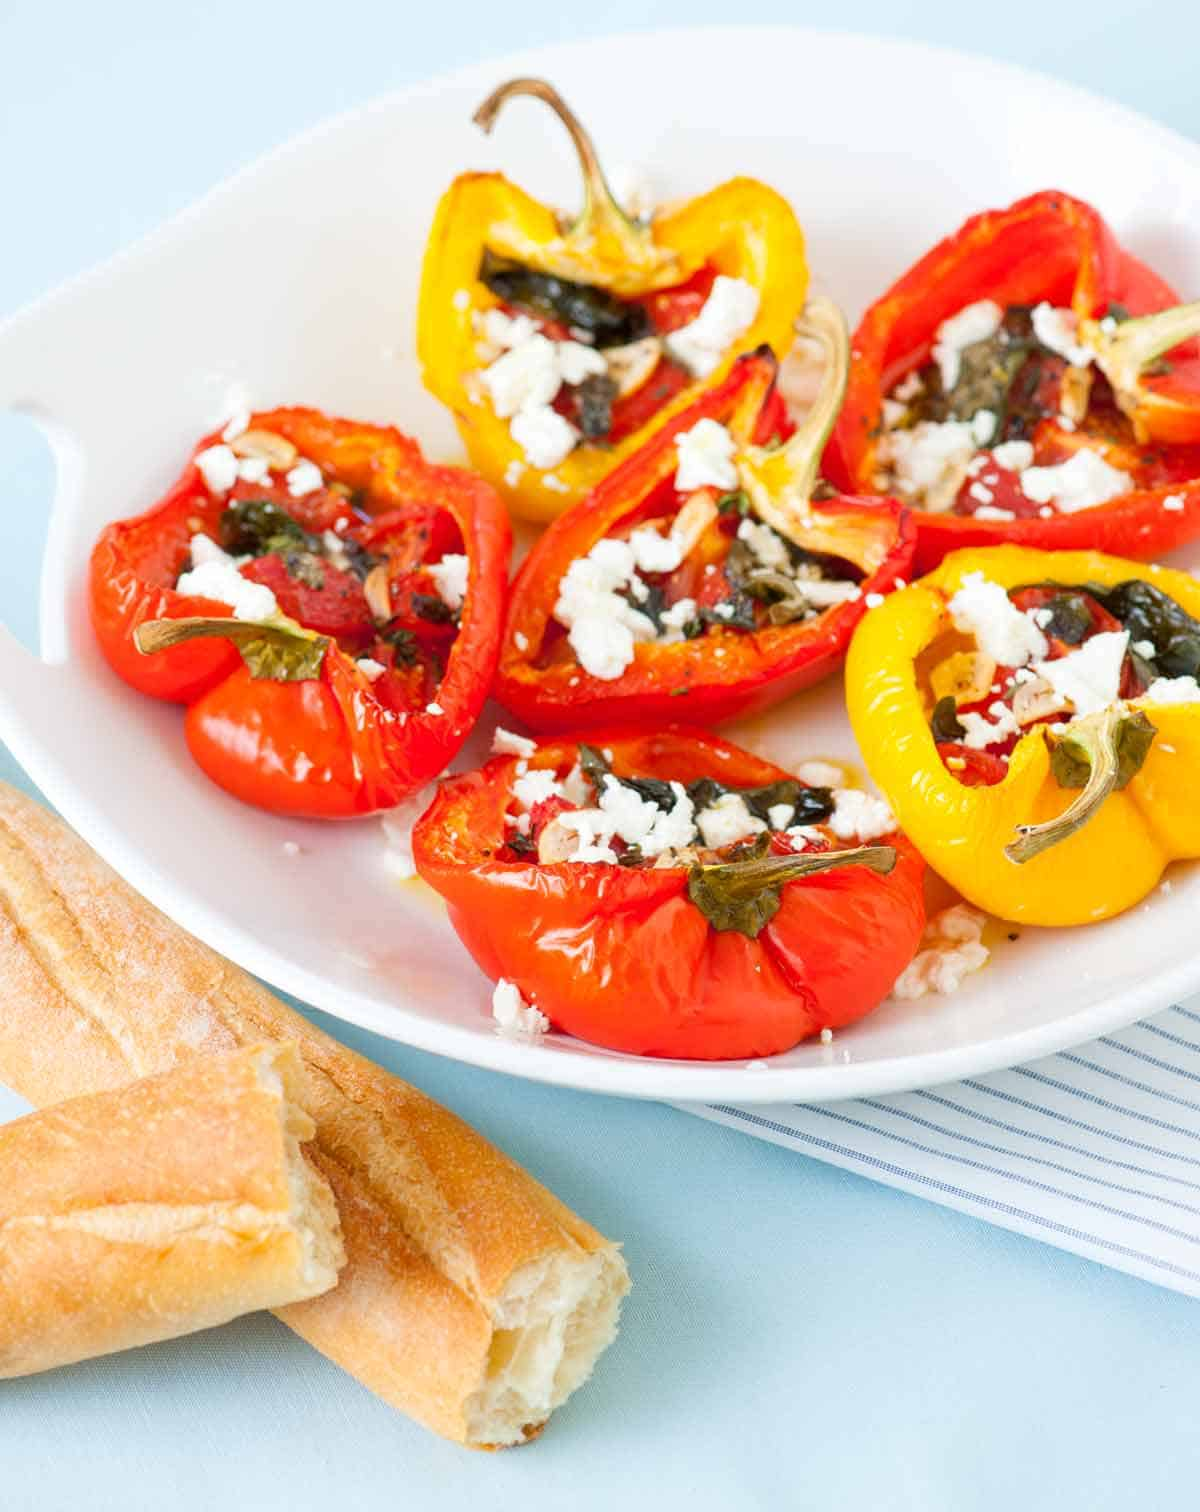 How to Make Tomato Basil Stuffed Bell Peppers